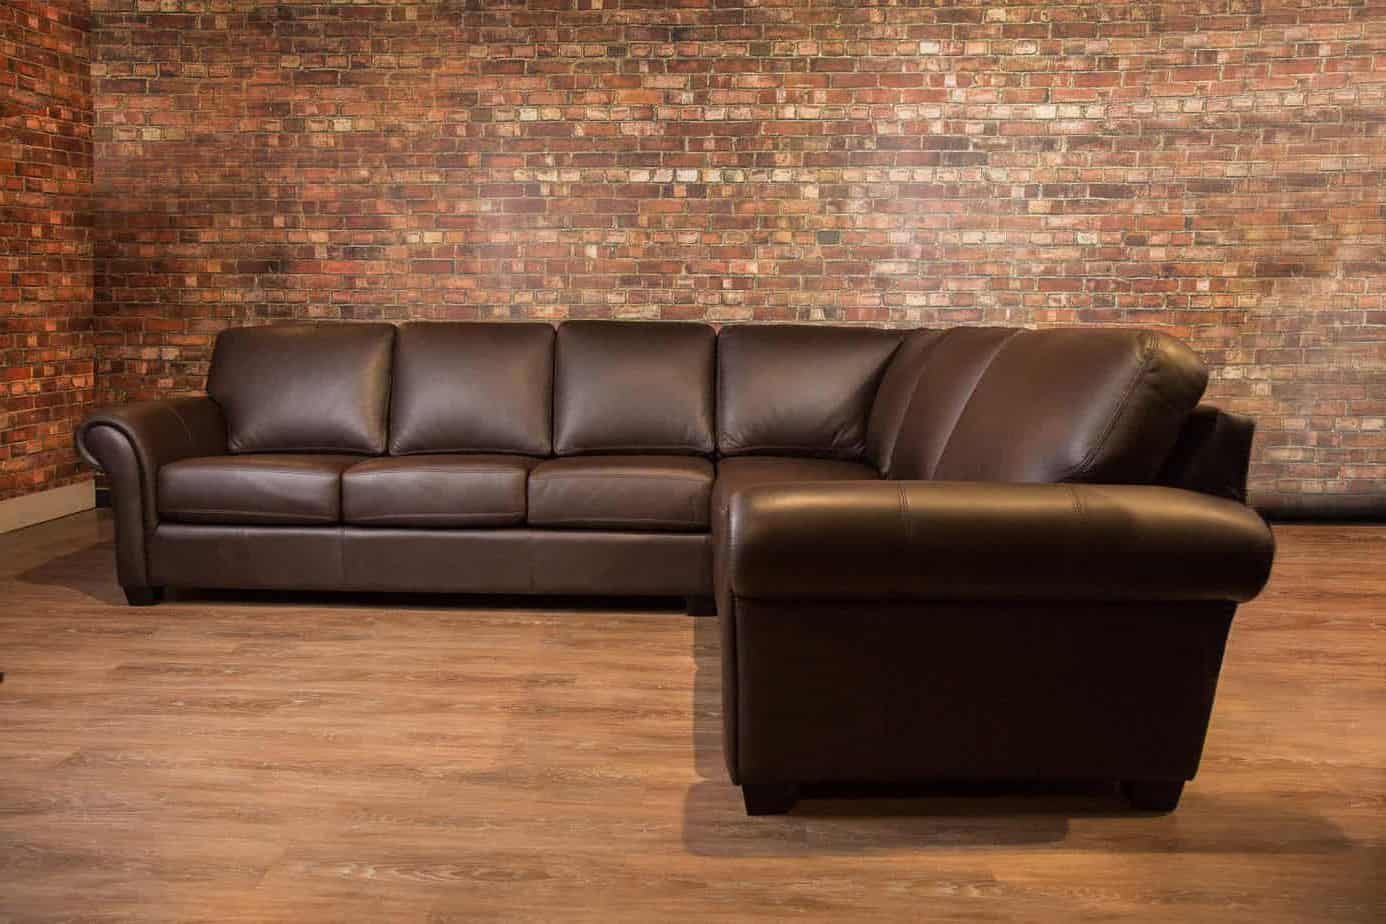 The Bella Leather Sectional Lhf Canada S Boss Leather